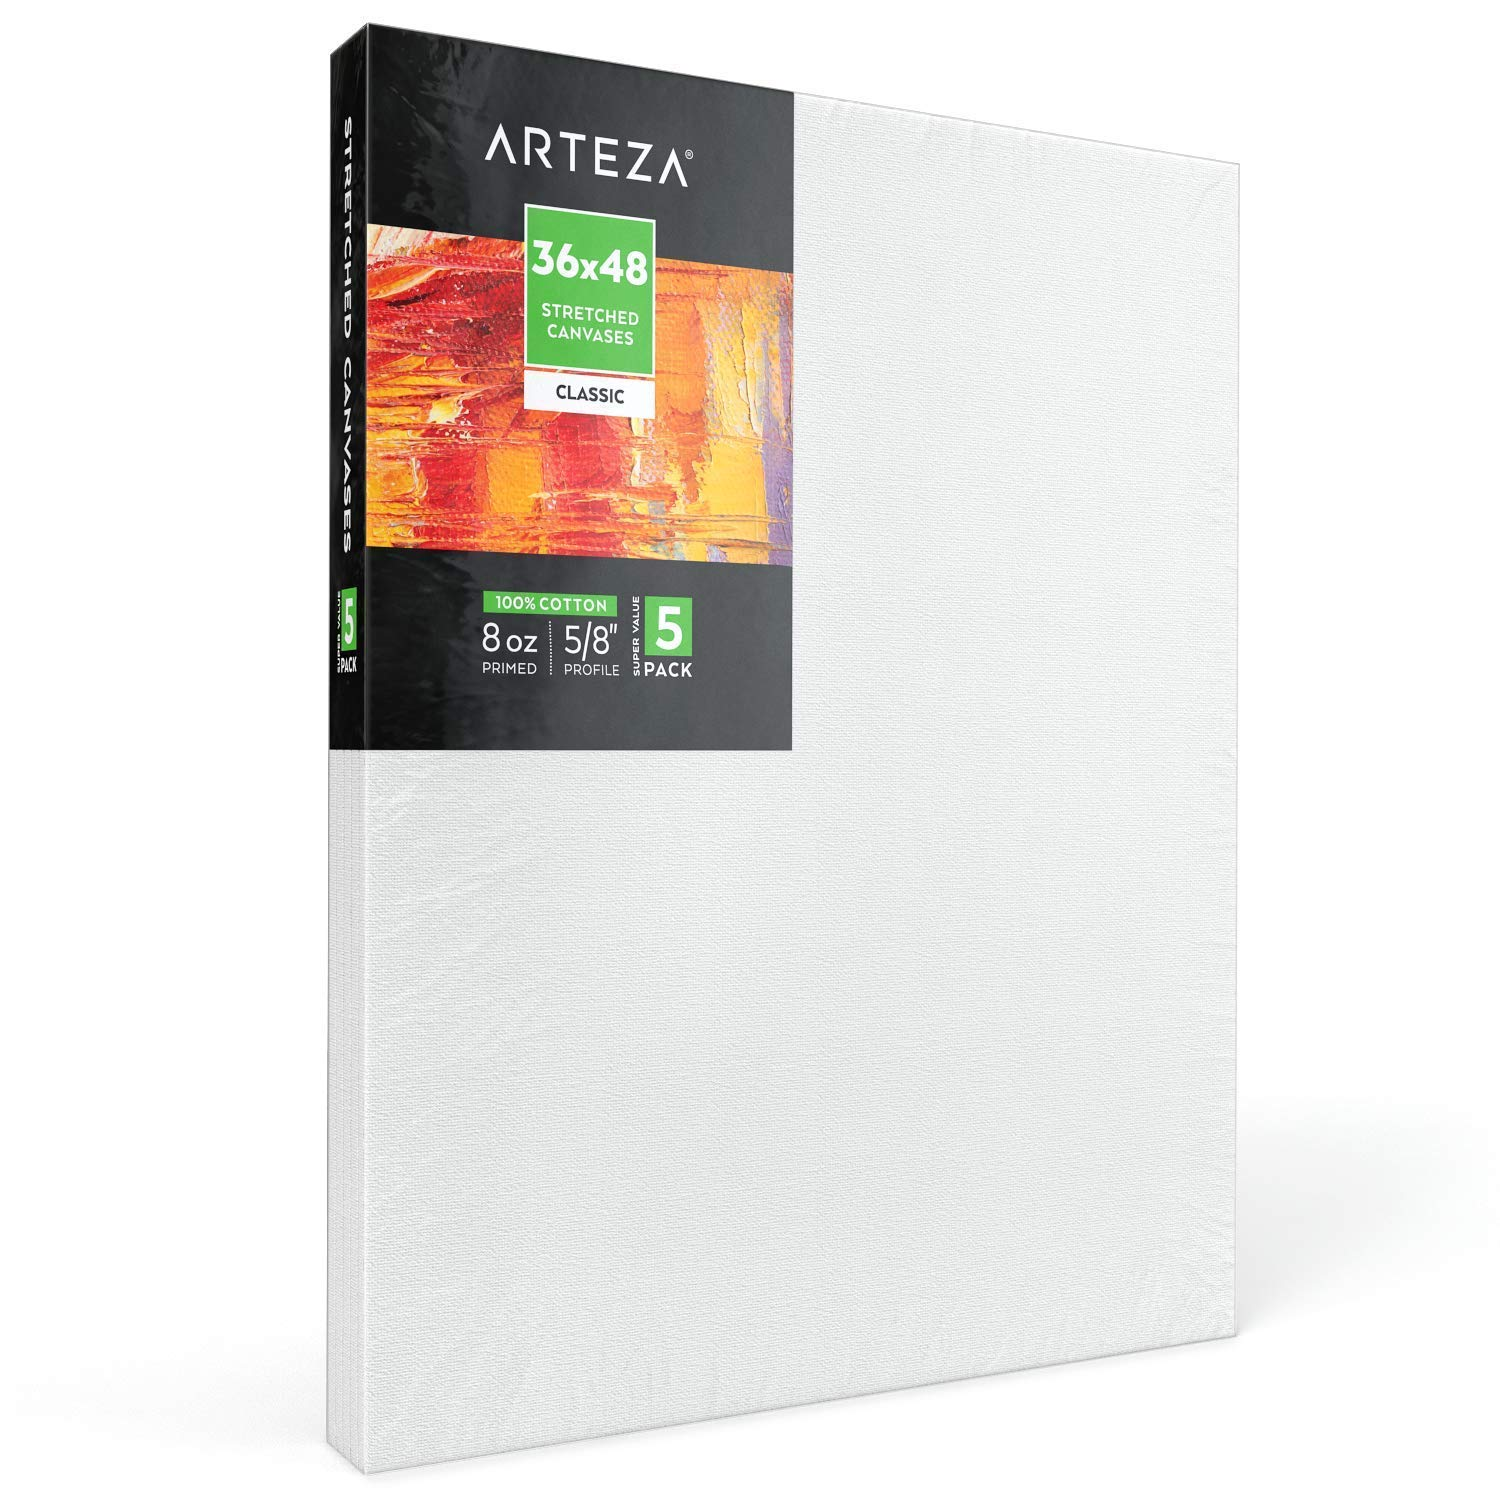 """Arteza 36x48"""" Stretched White Blank Canvas, Bulk Pack of 5, Primed, 100% Cotton for Painting, Acrylic Pouring, Oil Paint & Wet Art Media, Canvases for Professional Artist, Hobby Painters & Beginner"""